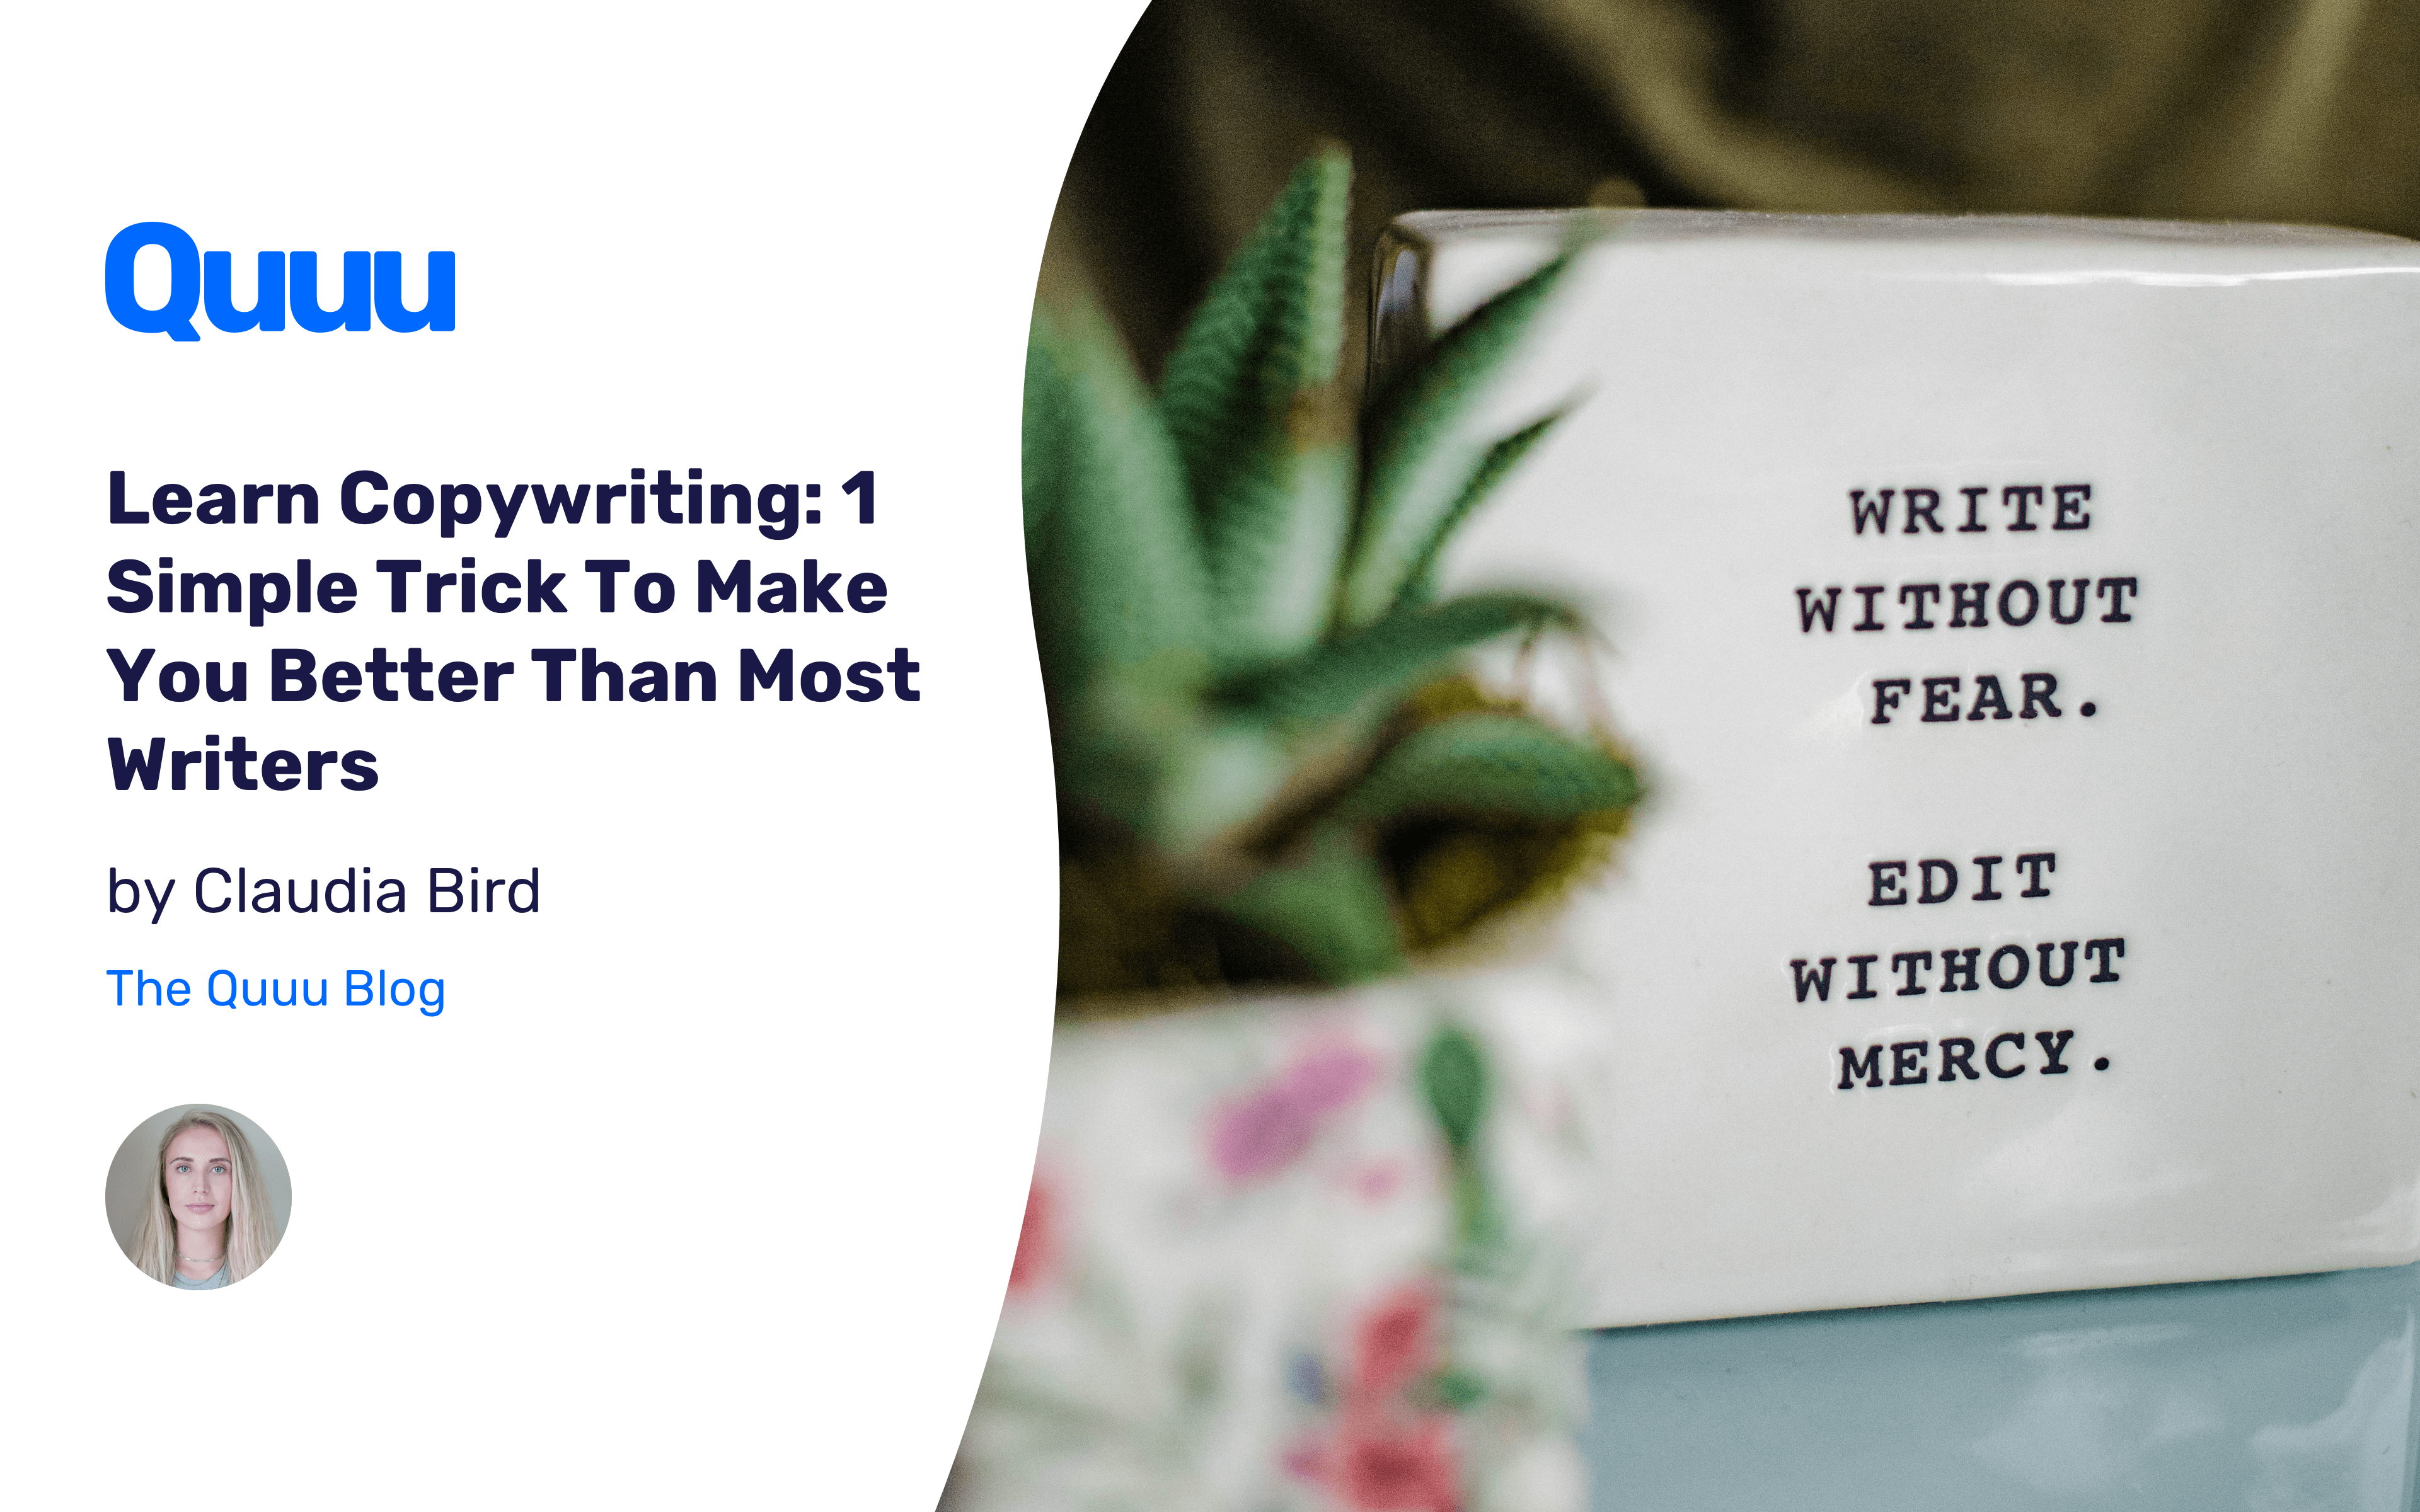 Learn Copywriting: 1 Simple Trick To Make You Better Than Most Writers